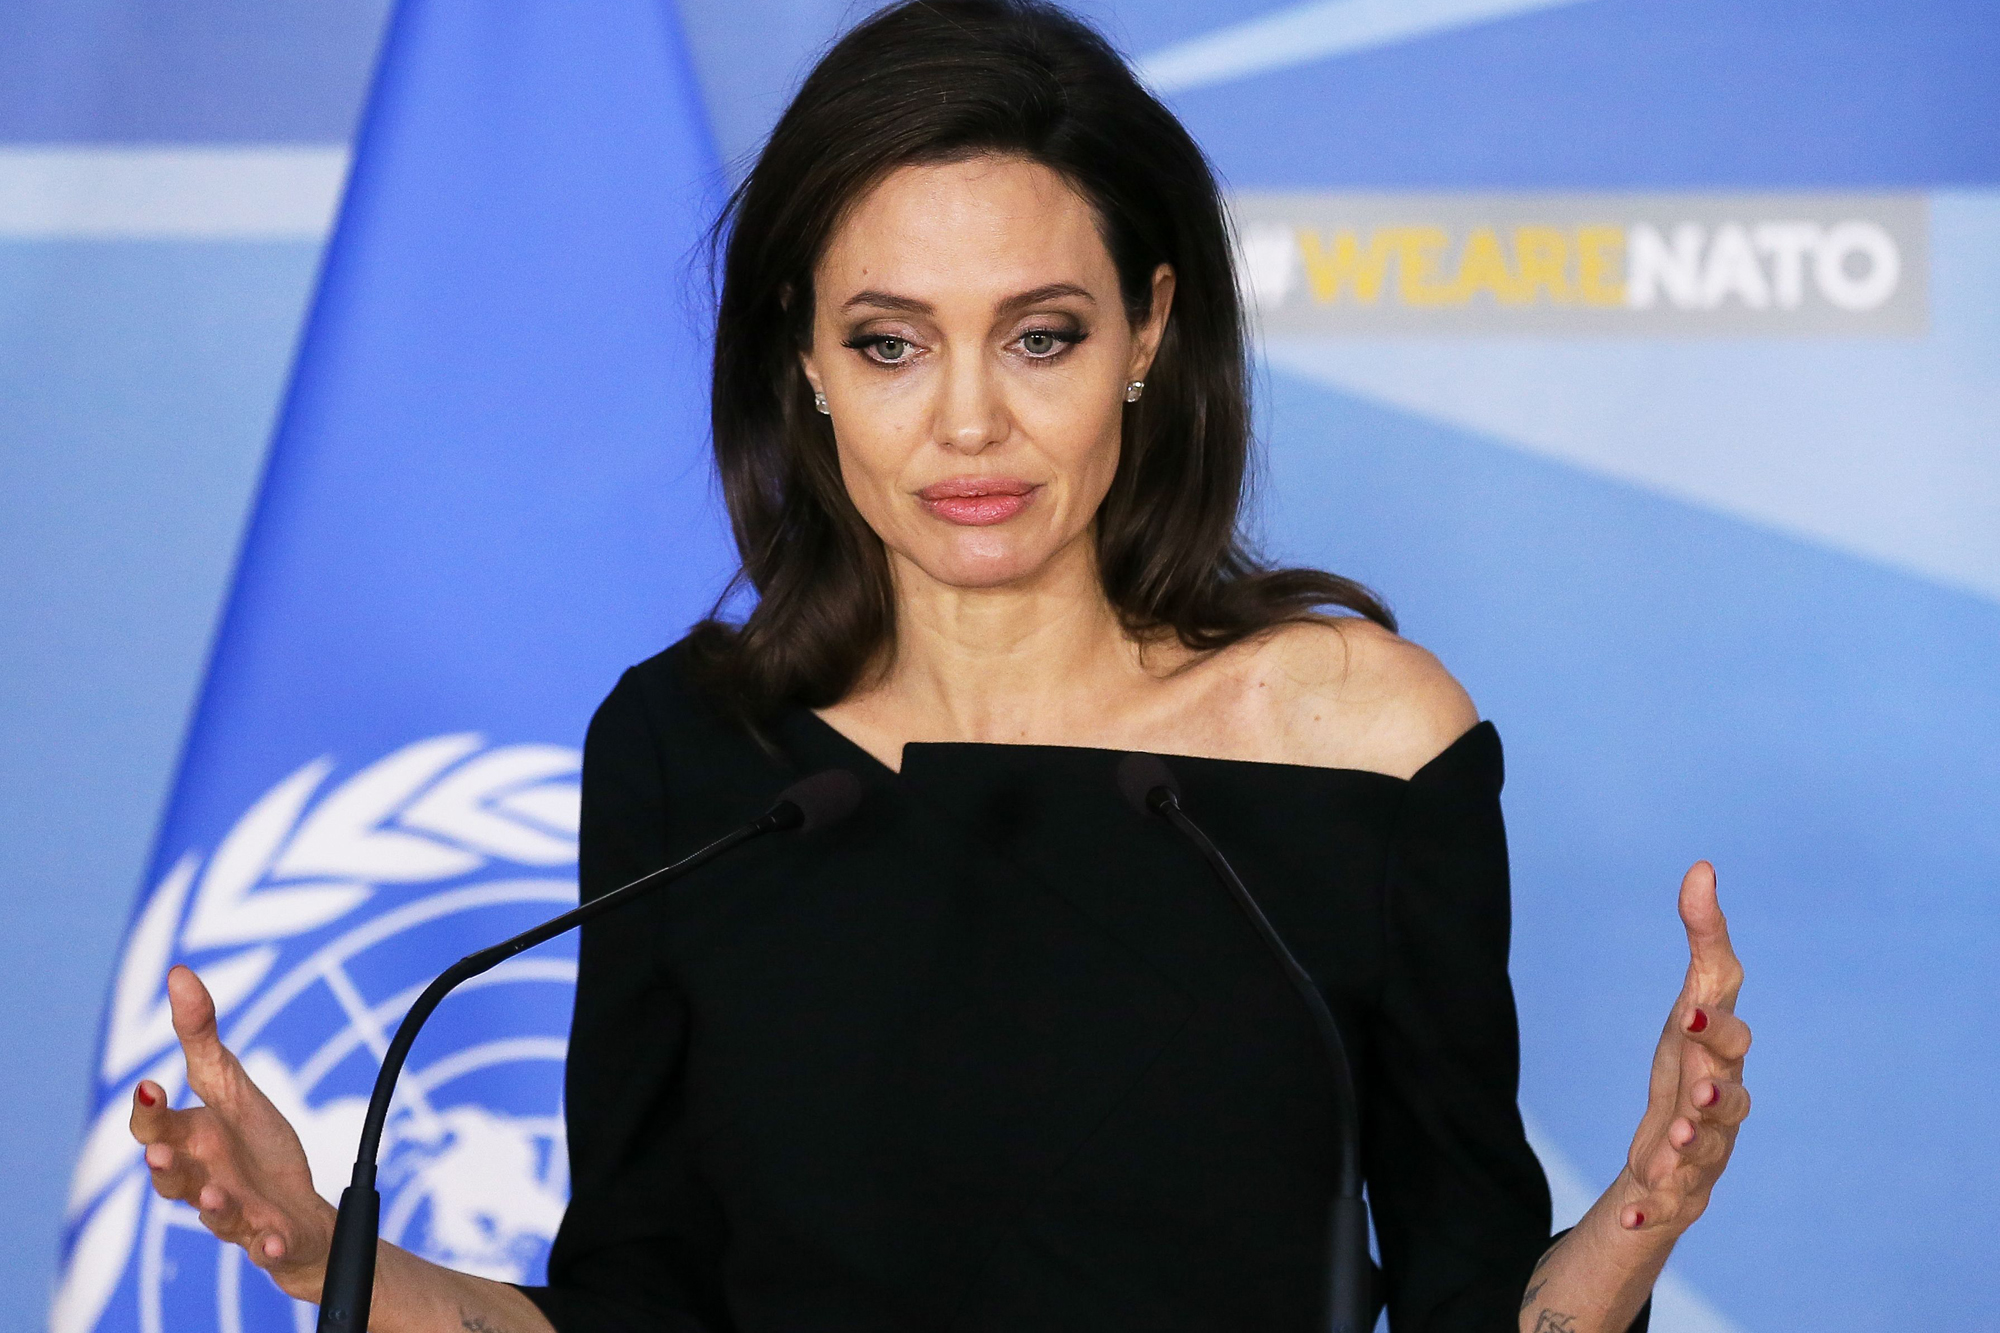 UNHCR envoy and actress Angelina Jolie at the NATO in Brussels, Belgium - 31 Jan 2018